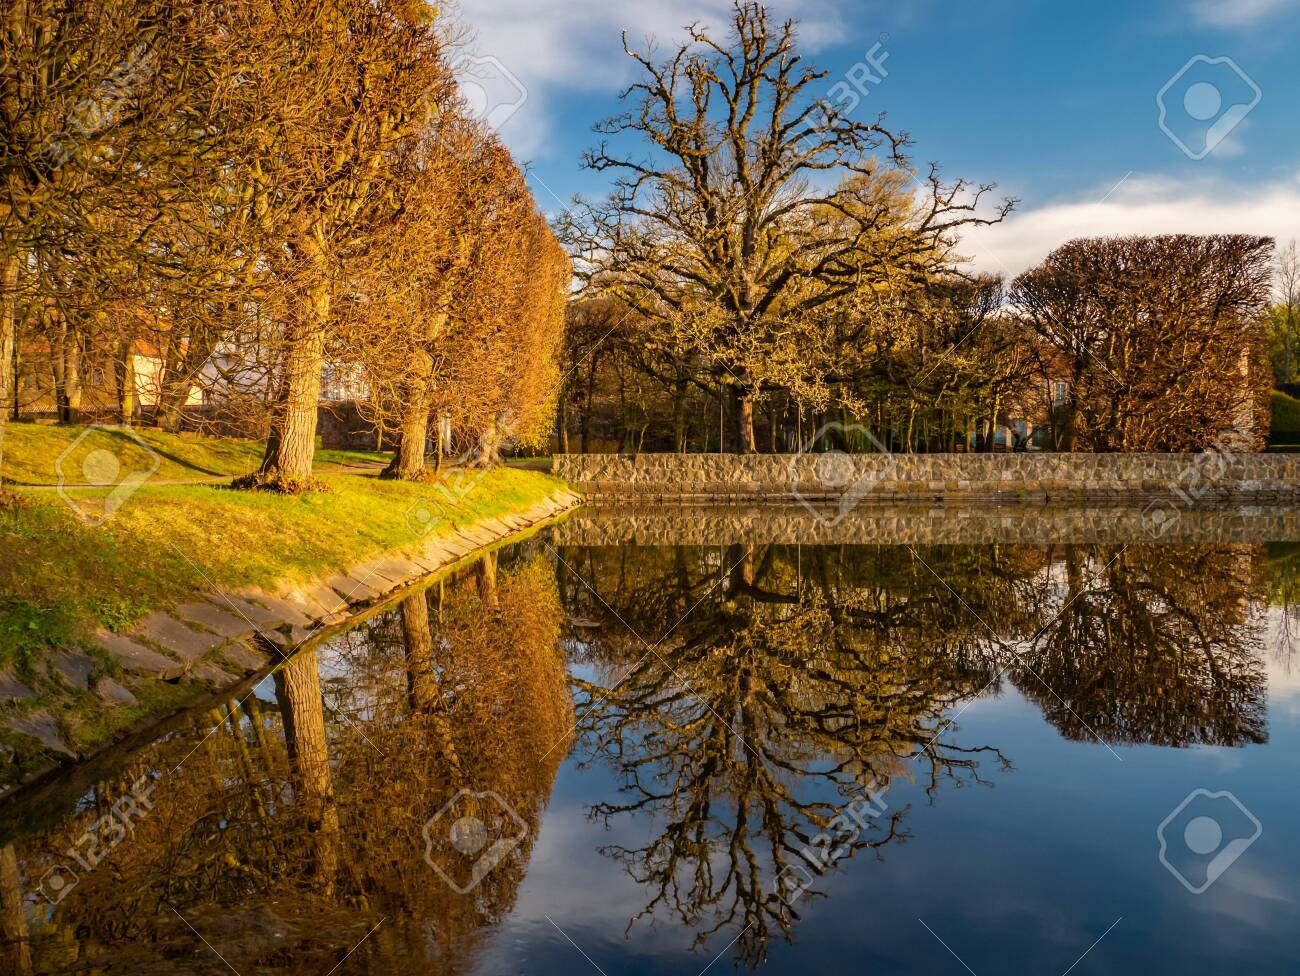 Trees and their reflection in the Oliwa Park. Early spring. - 123609671